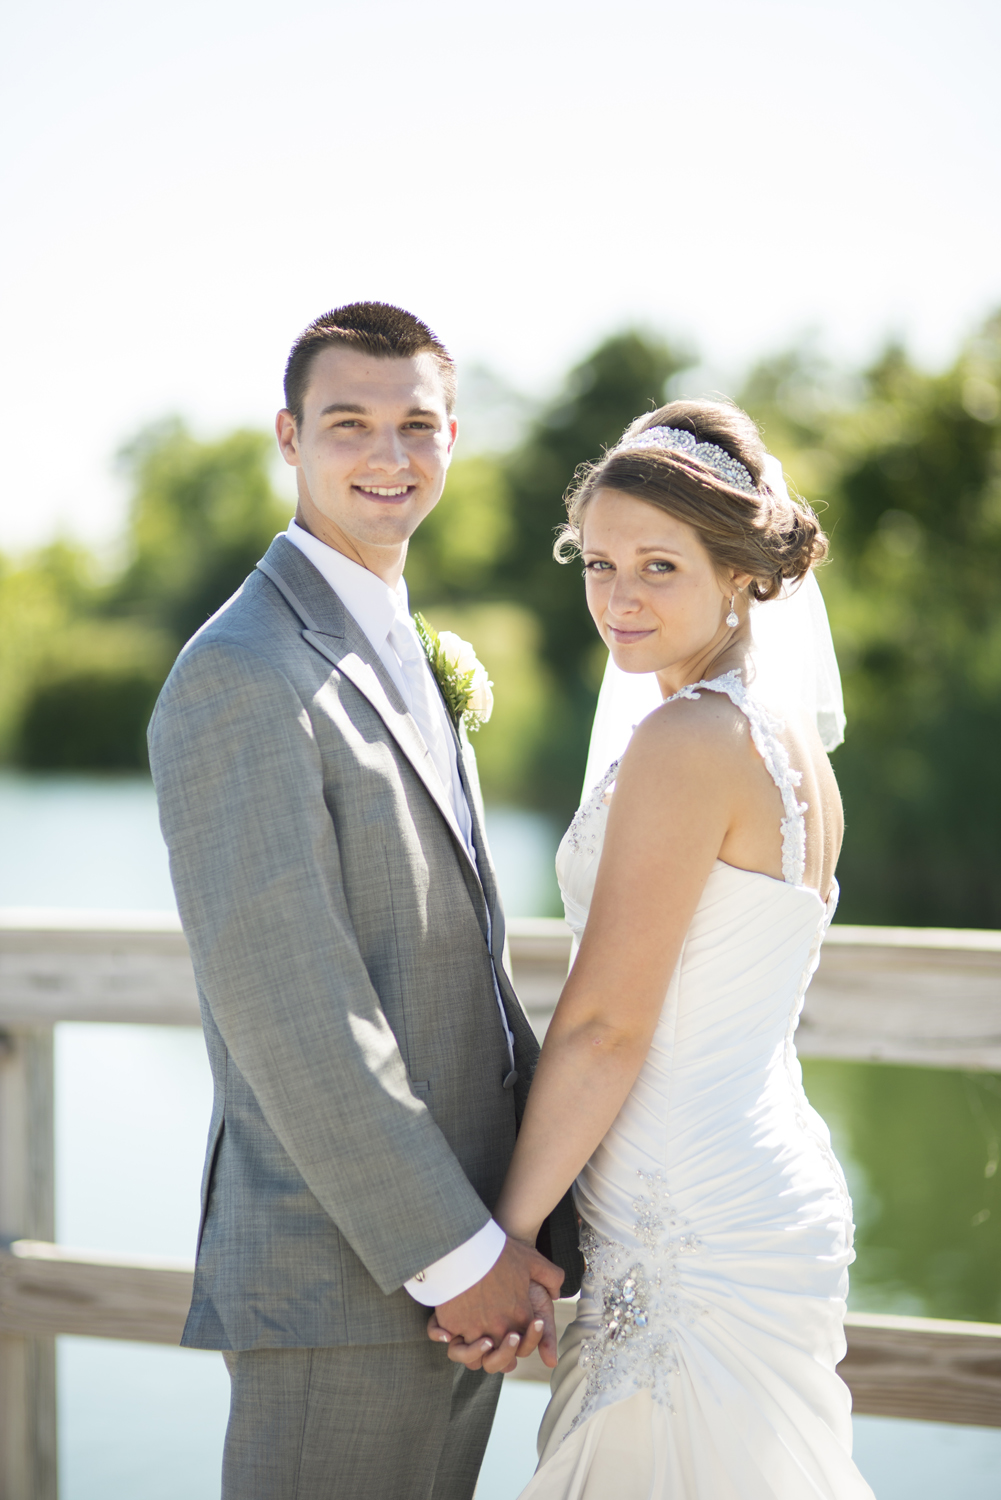 Bride and groom portrait on a pier by the water in Suffolk, Virginia